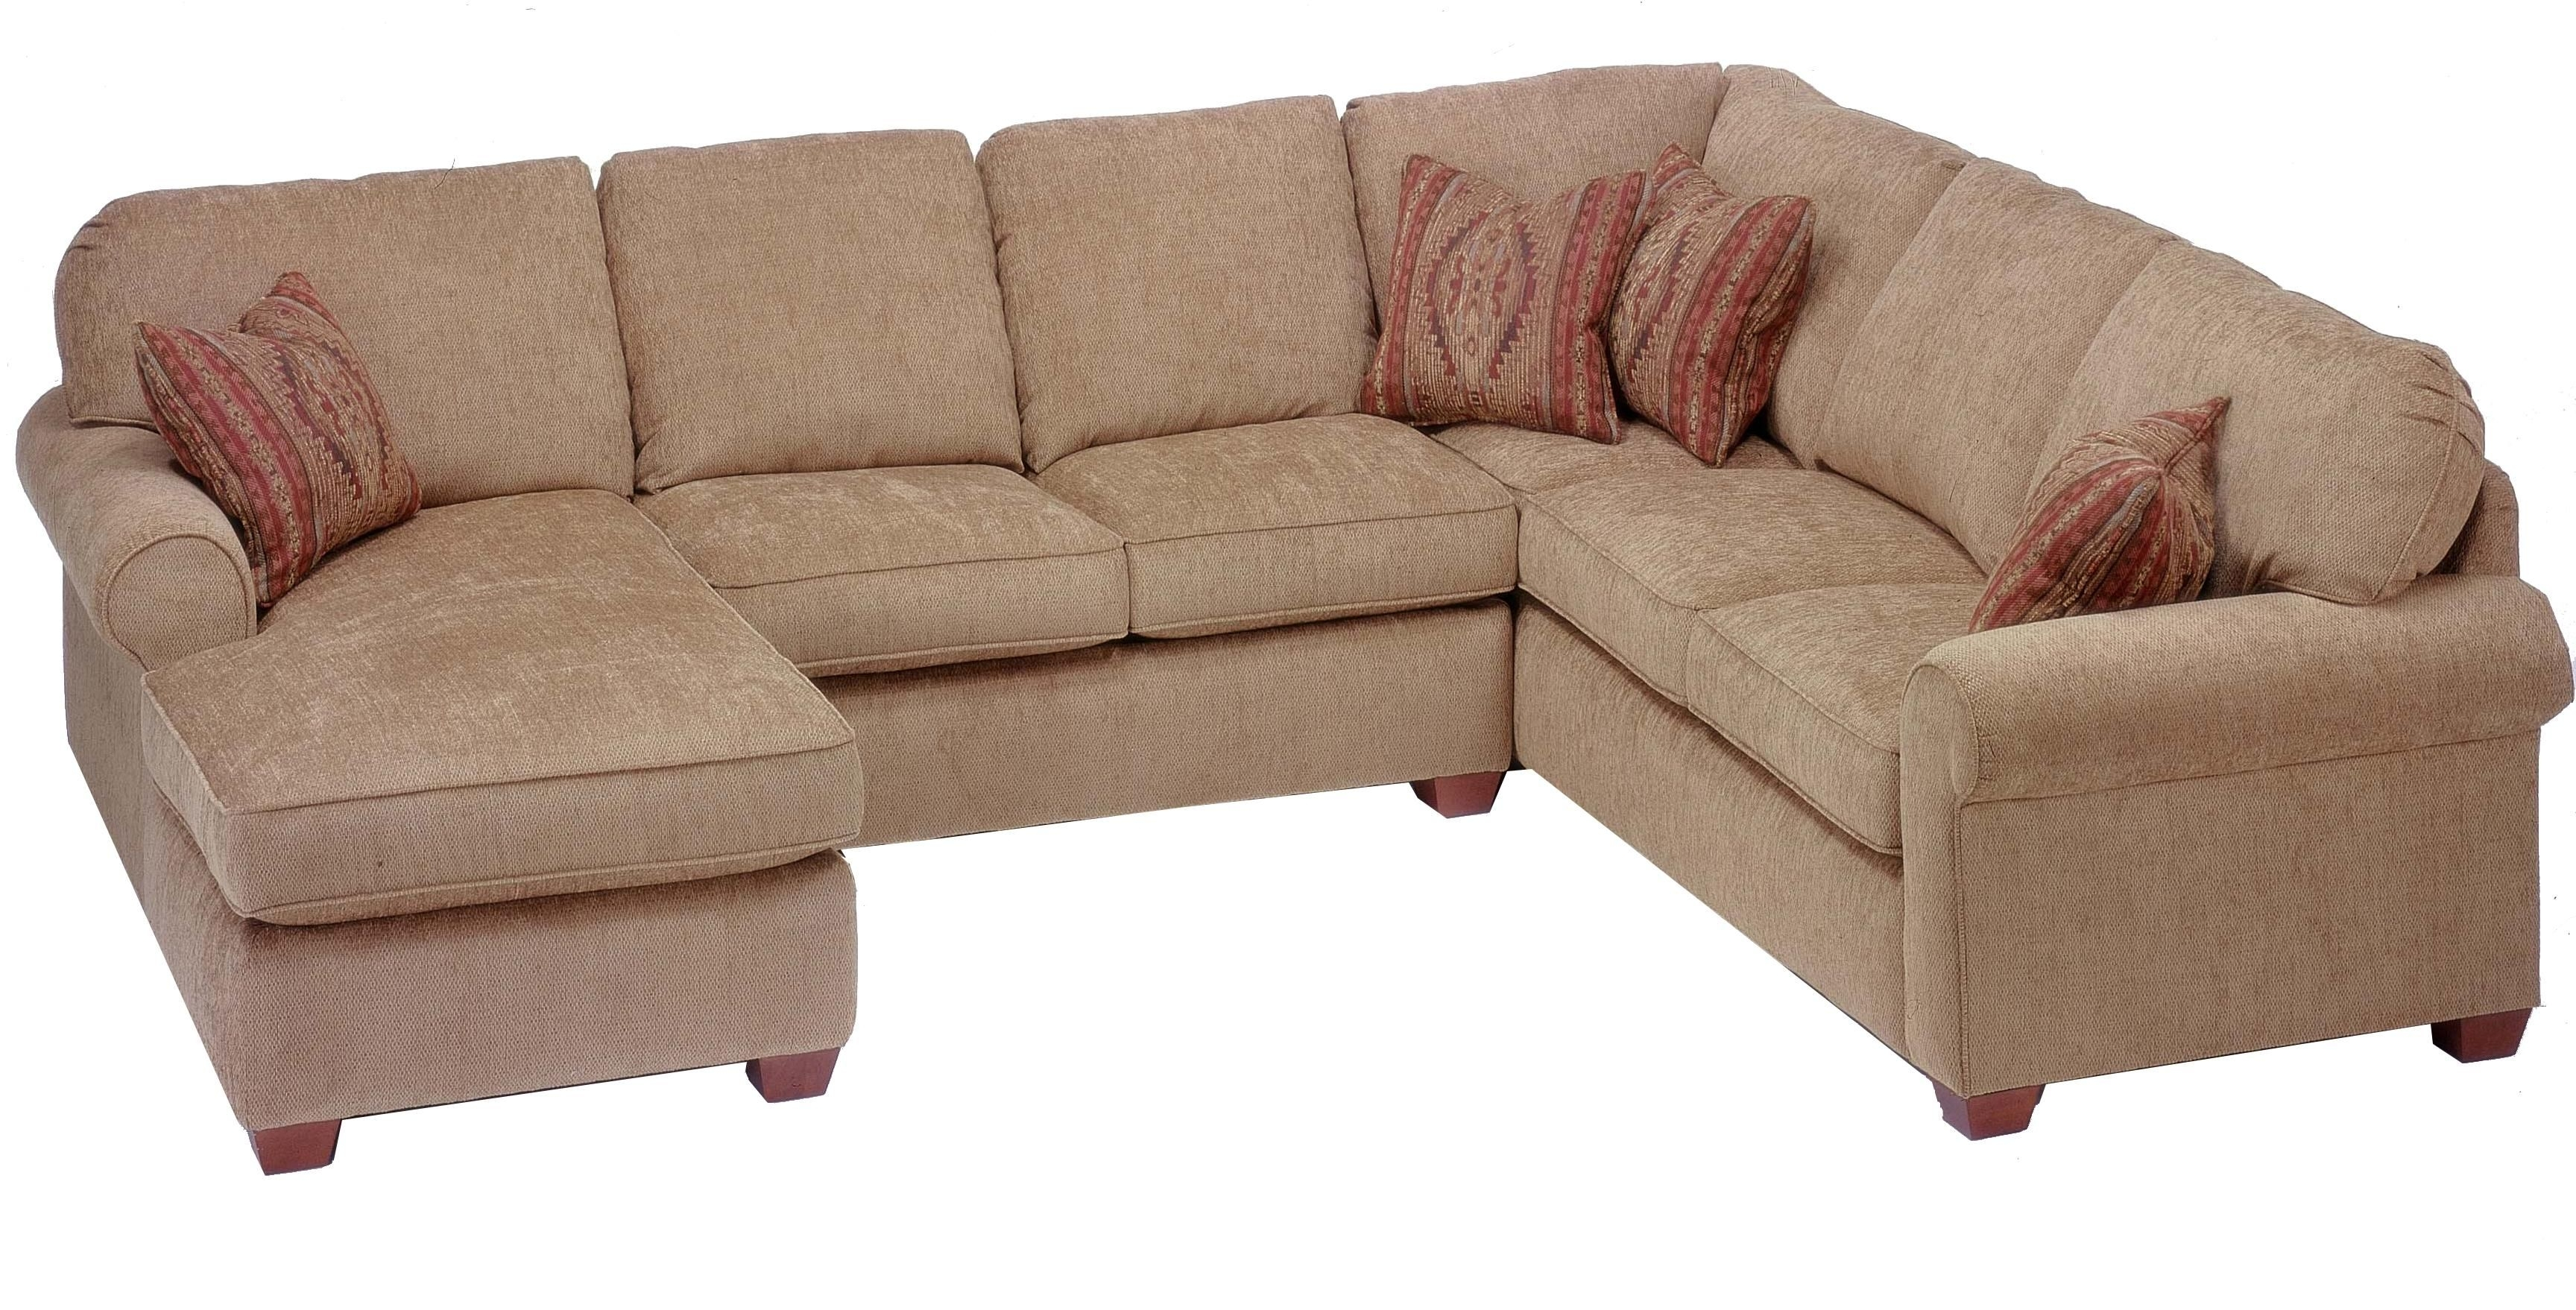 Thornton 3 Piece Sectionalflexsteel   My Style   Pinterest Pertaining To Blaine 4 Piece Sectionals (Image 25 of 25)